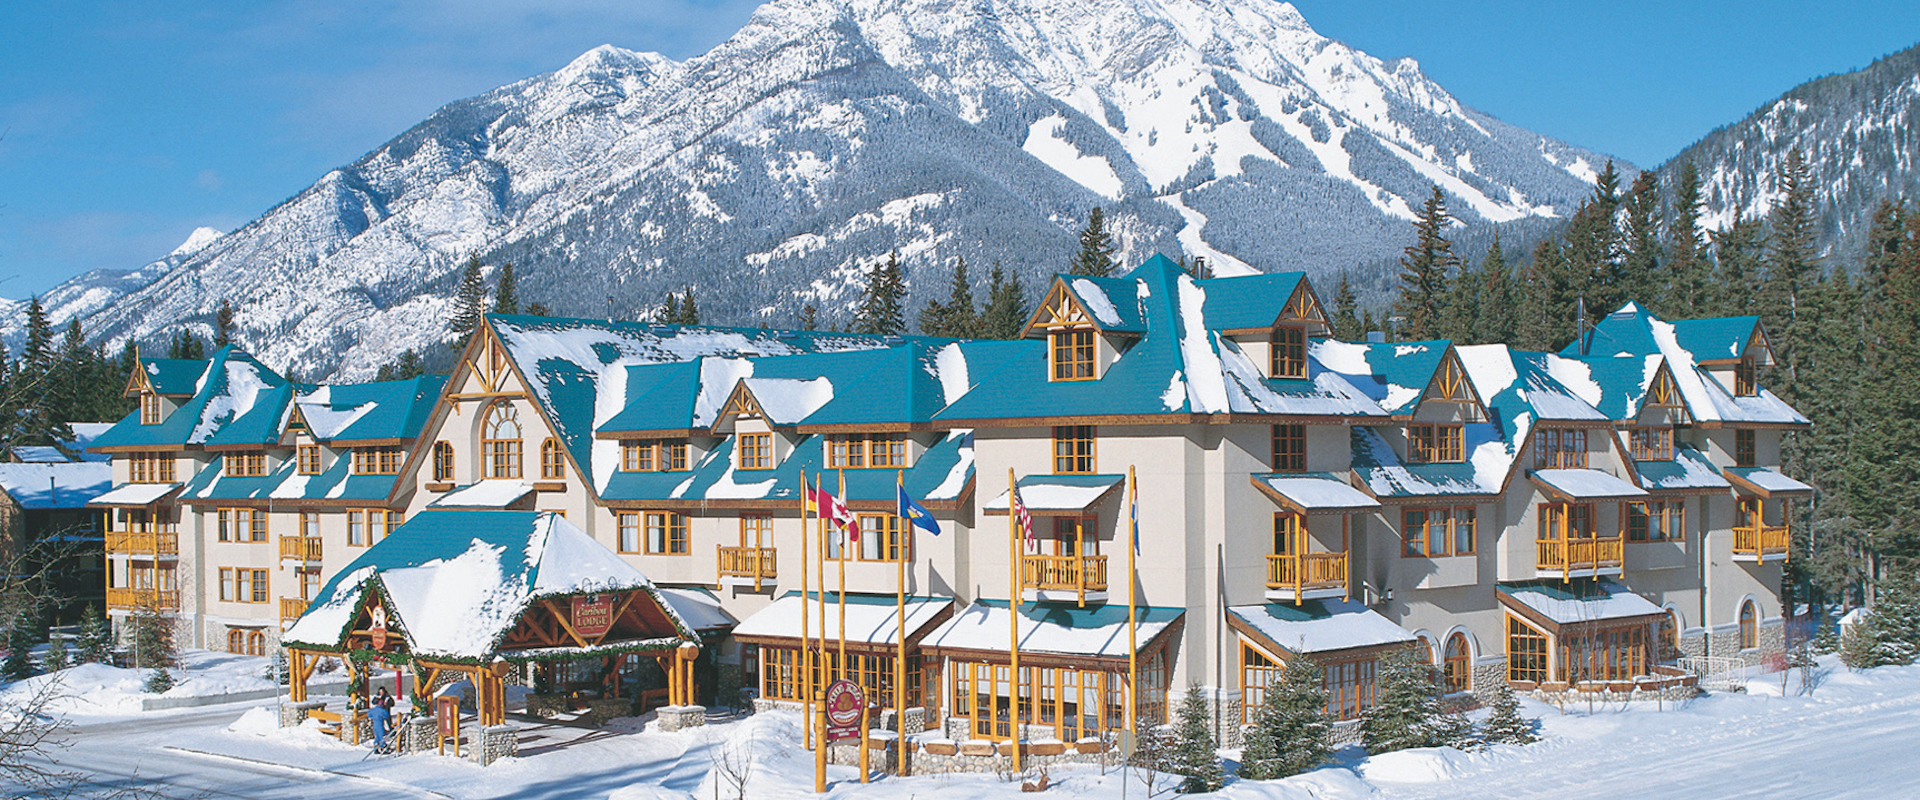 Banff Caribou Lodge Exterior in Winter in Banff, Canadian Rockies